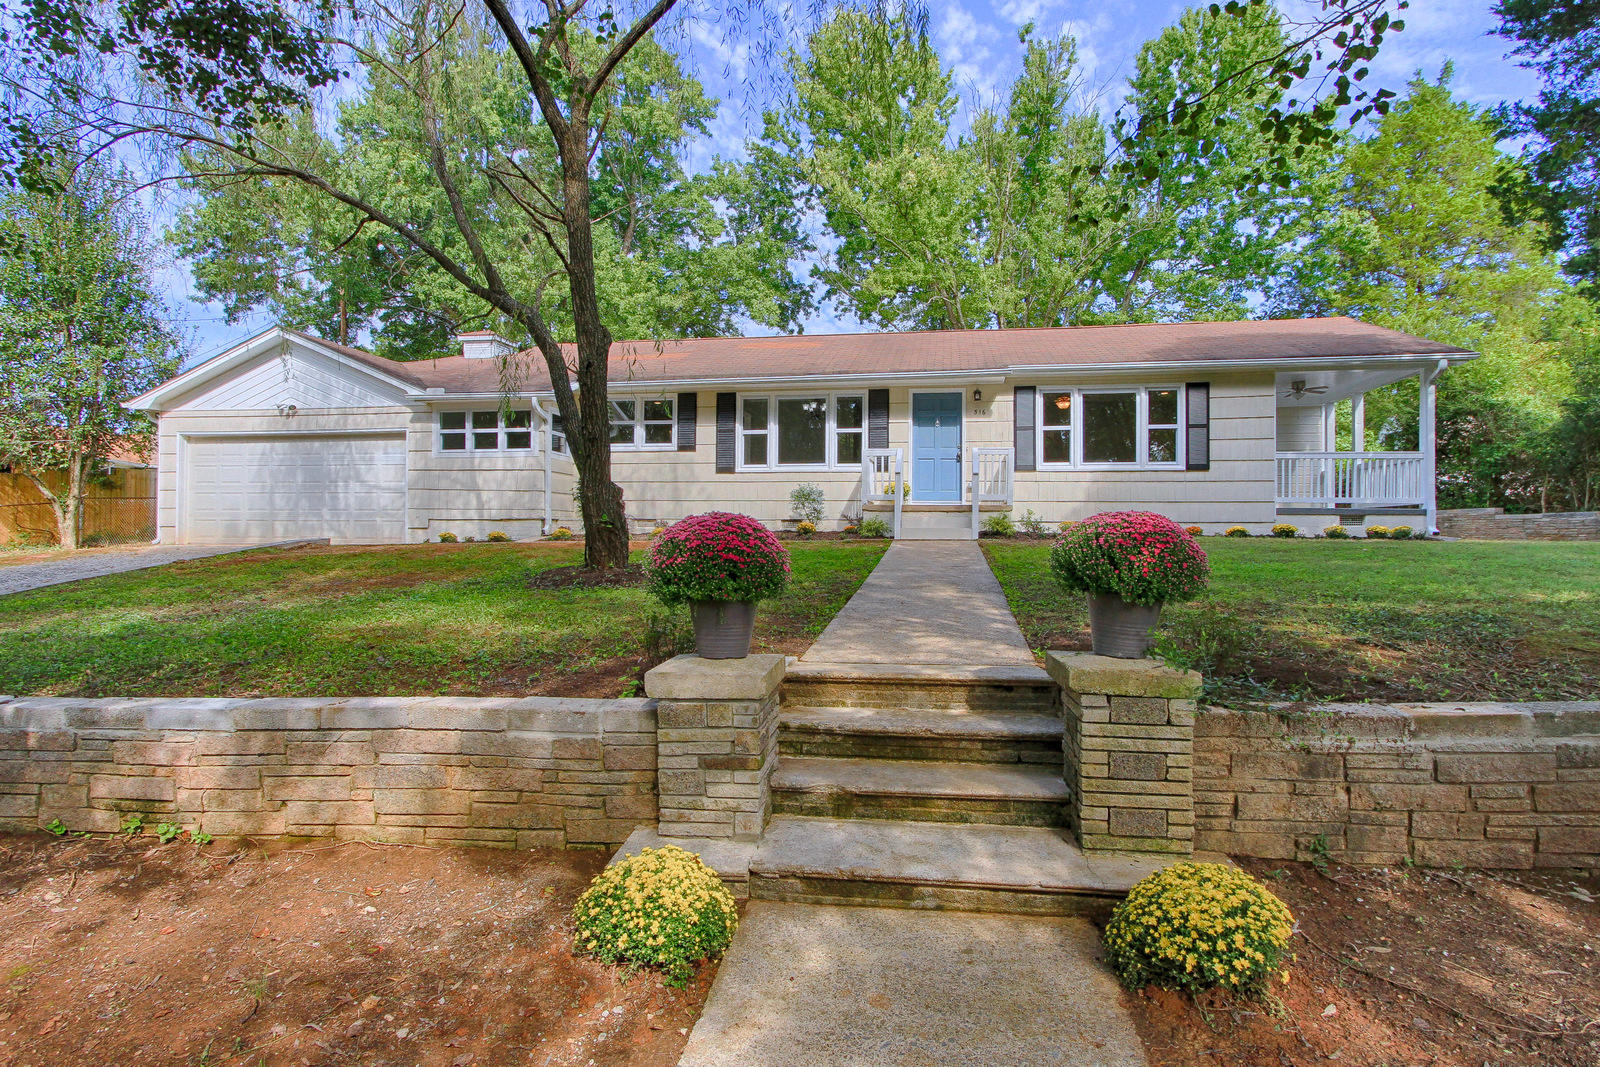 516 Smokey Drive, Loudon, Tennessee 37774, 3 Bedrooms Bedrooms, ,2 BathroomsBathrooms,Single Family,For Sale,Smokey,1058317